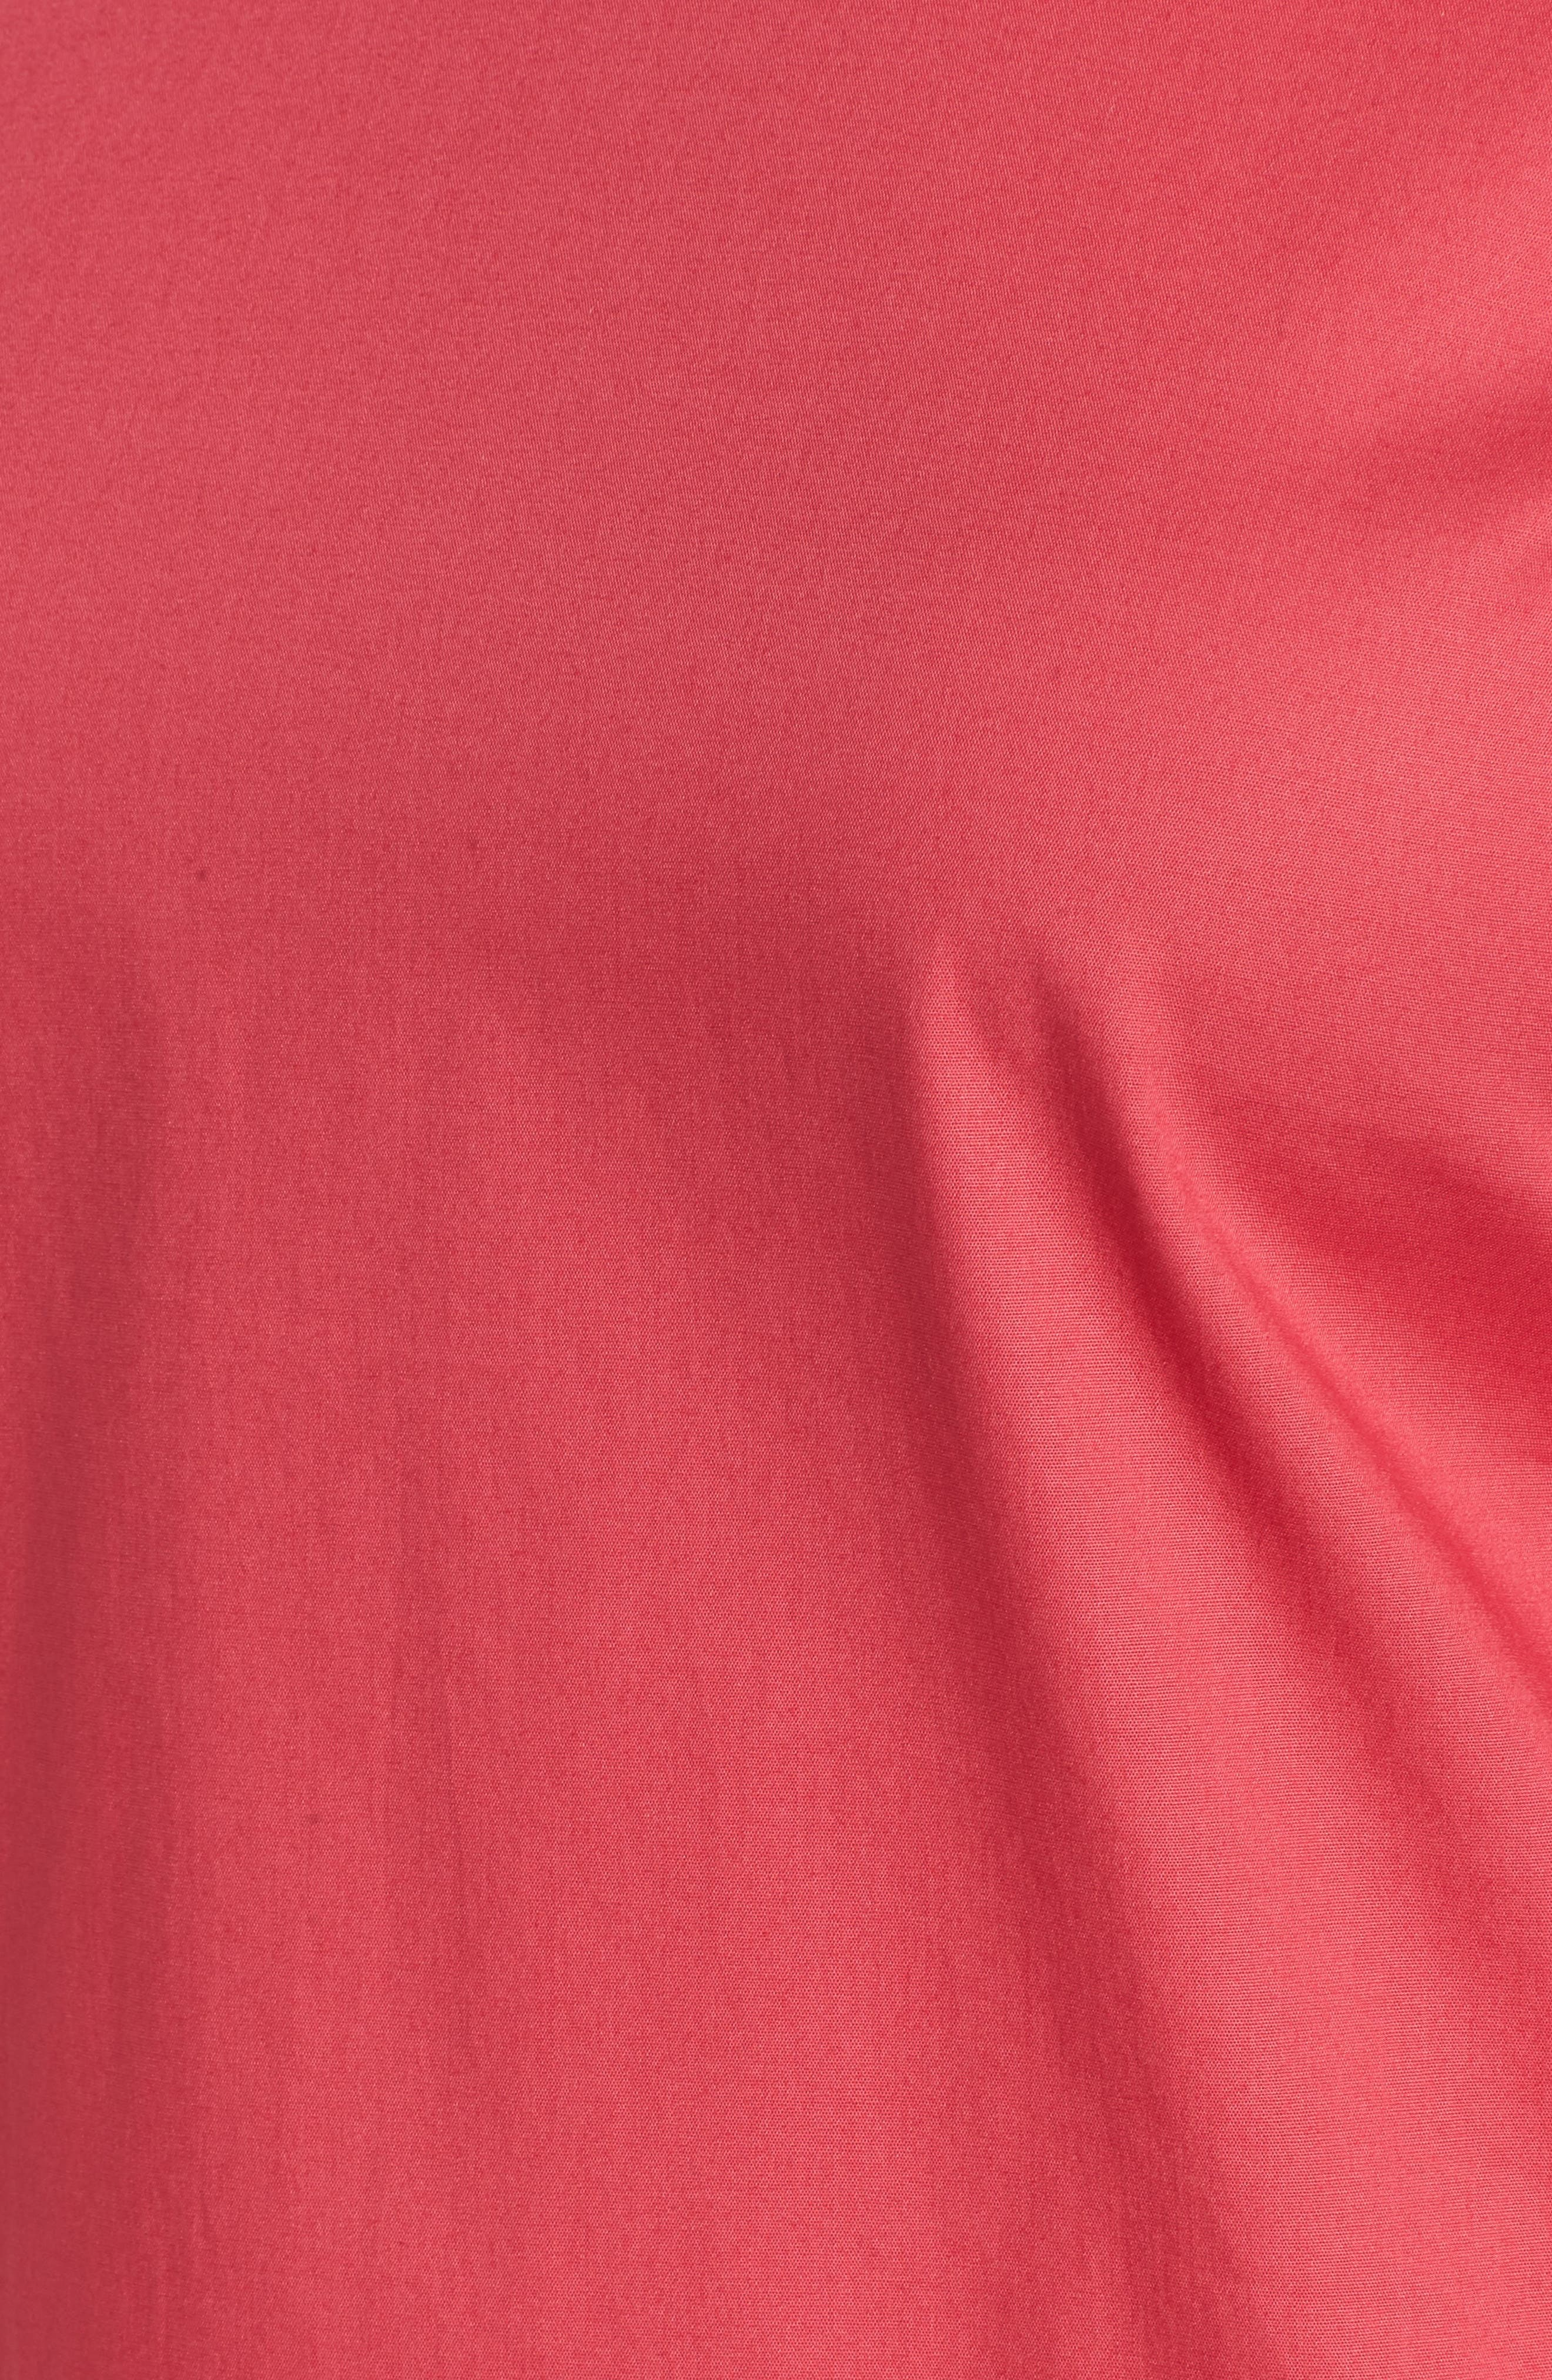 Isolema Stretch Cotton Bow Sleeve Top,                             Alternate thumbnail 5, color,                             Lychee Pink